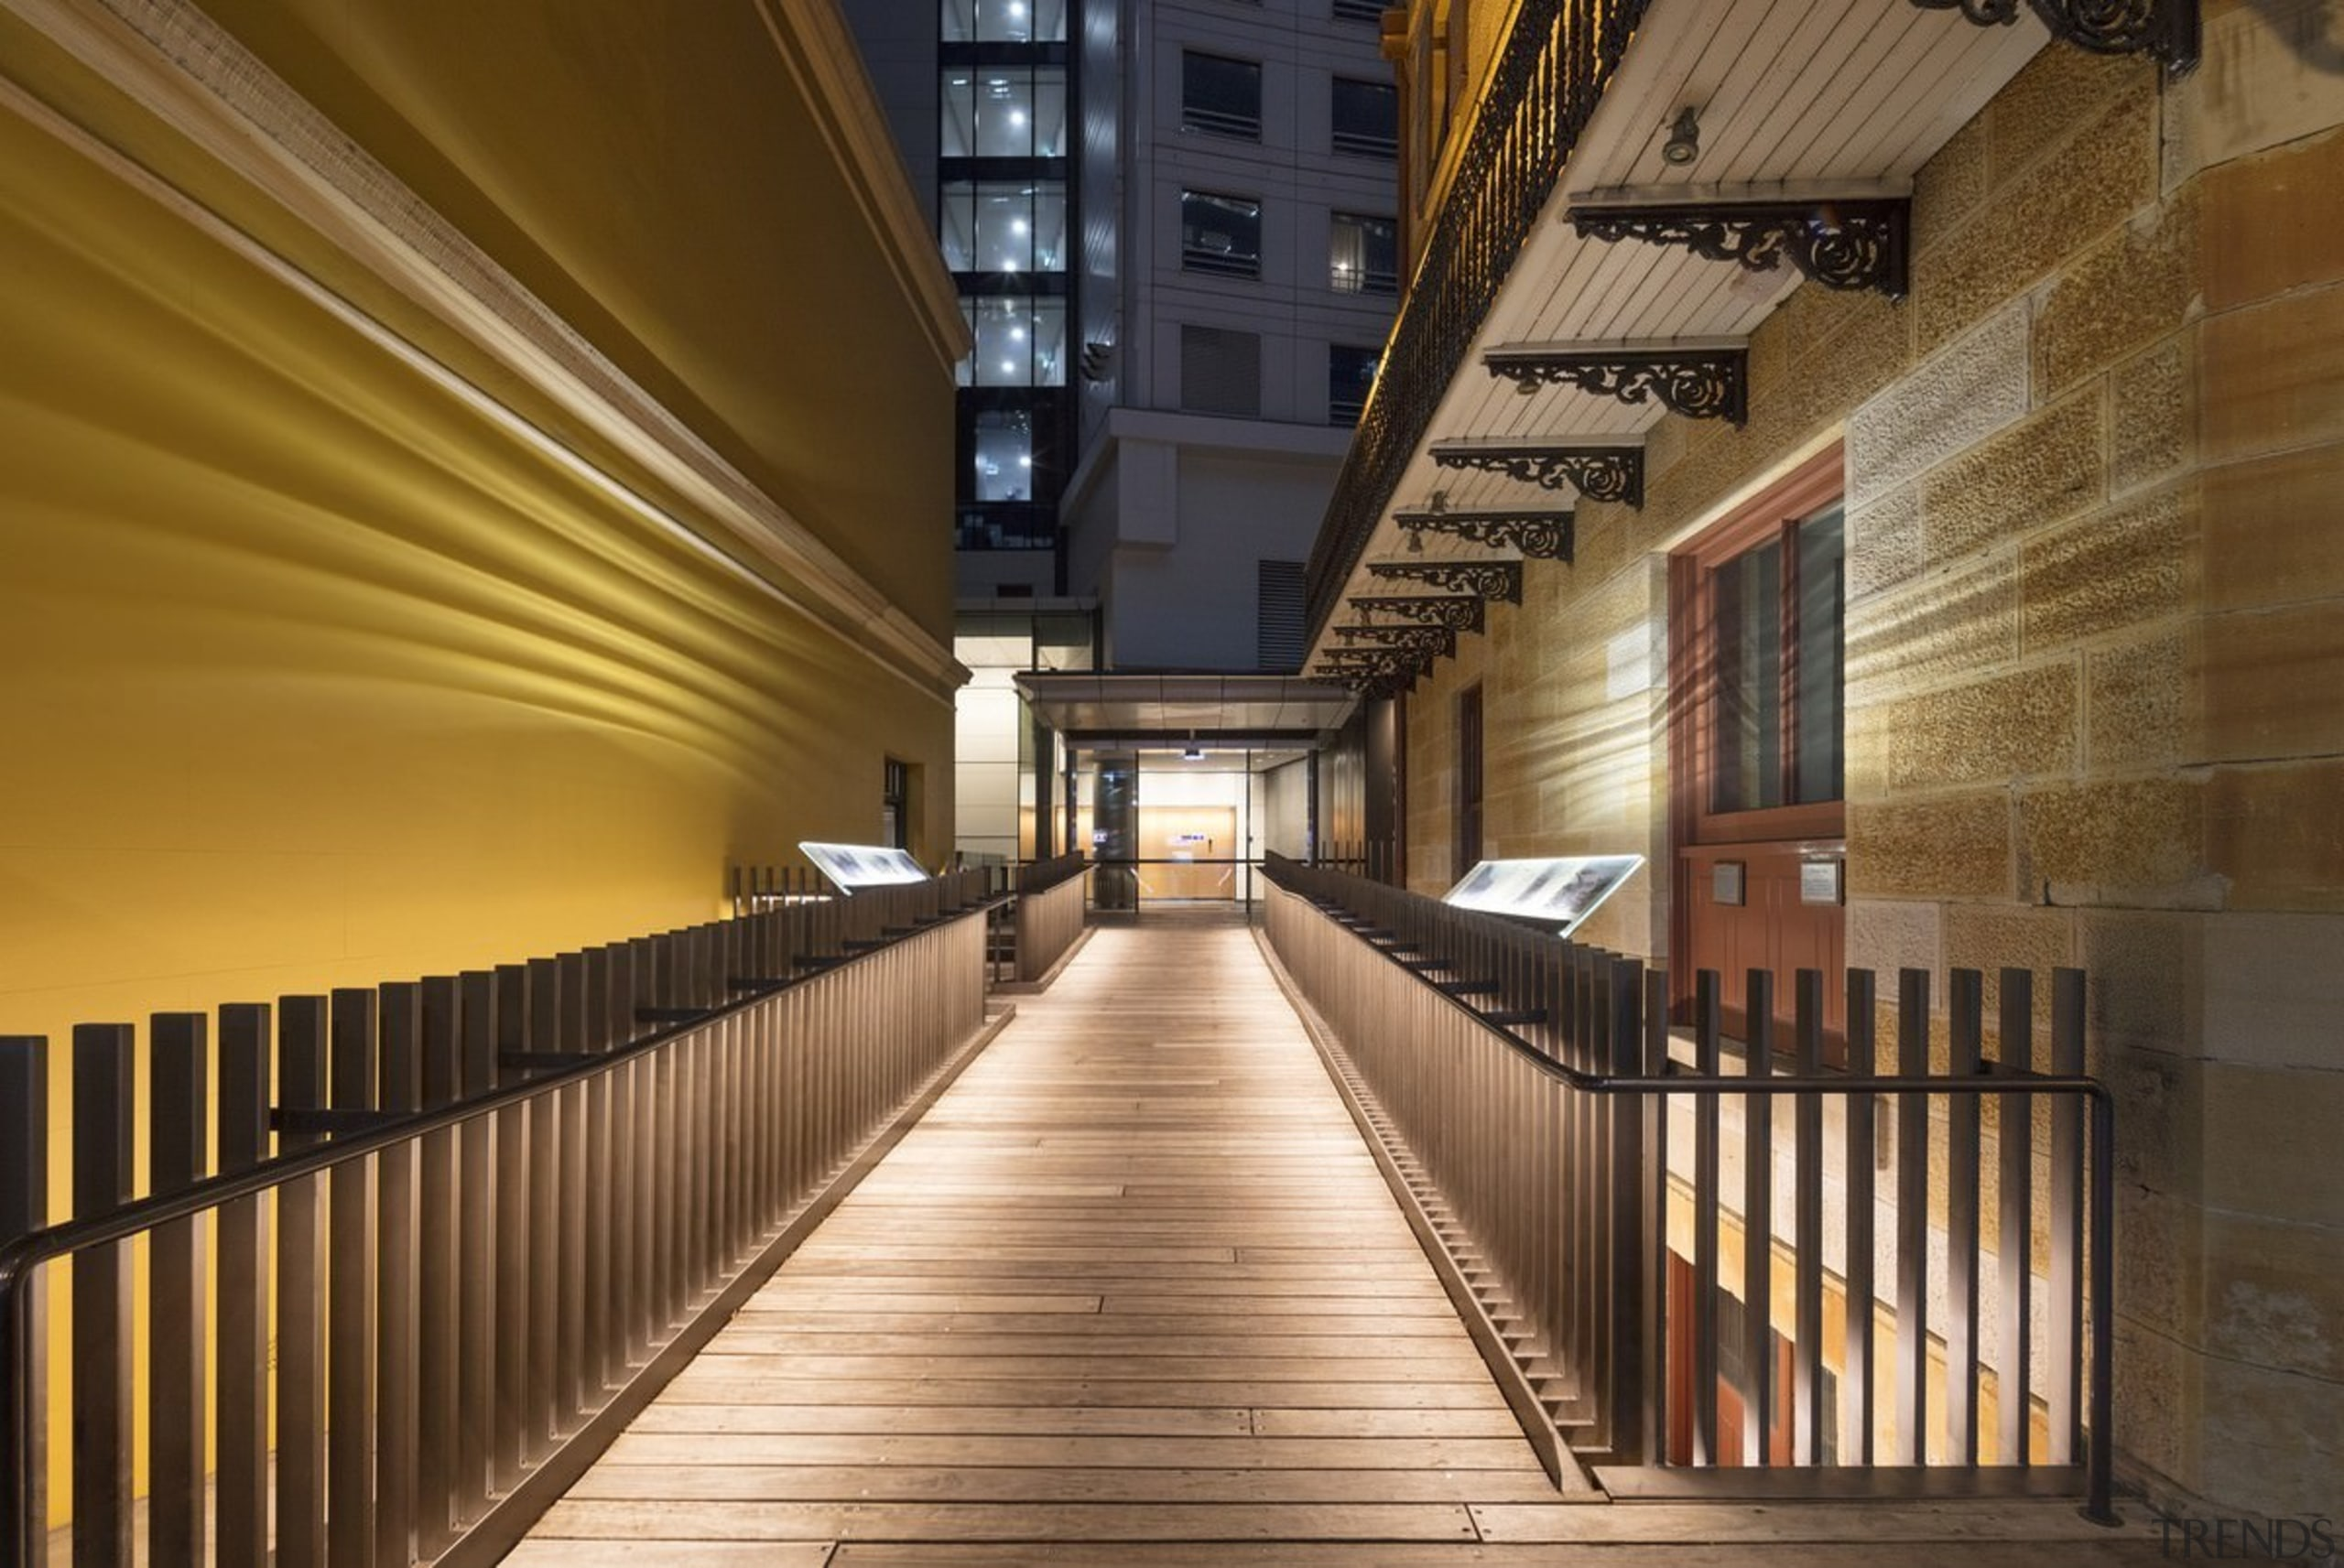 161 Sussex St – Cox Architecture - 161 architecture, building, ceiling, lobby, stairs, brown